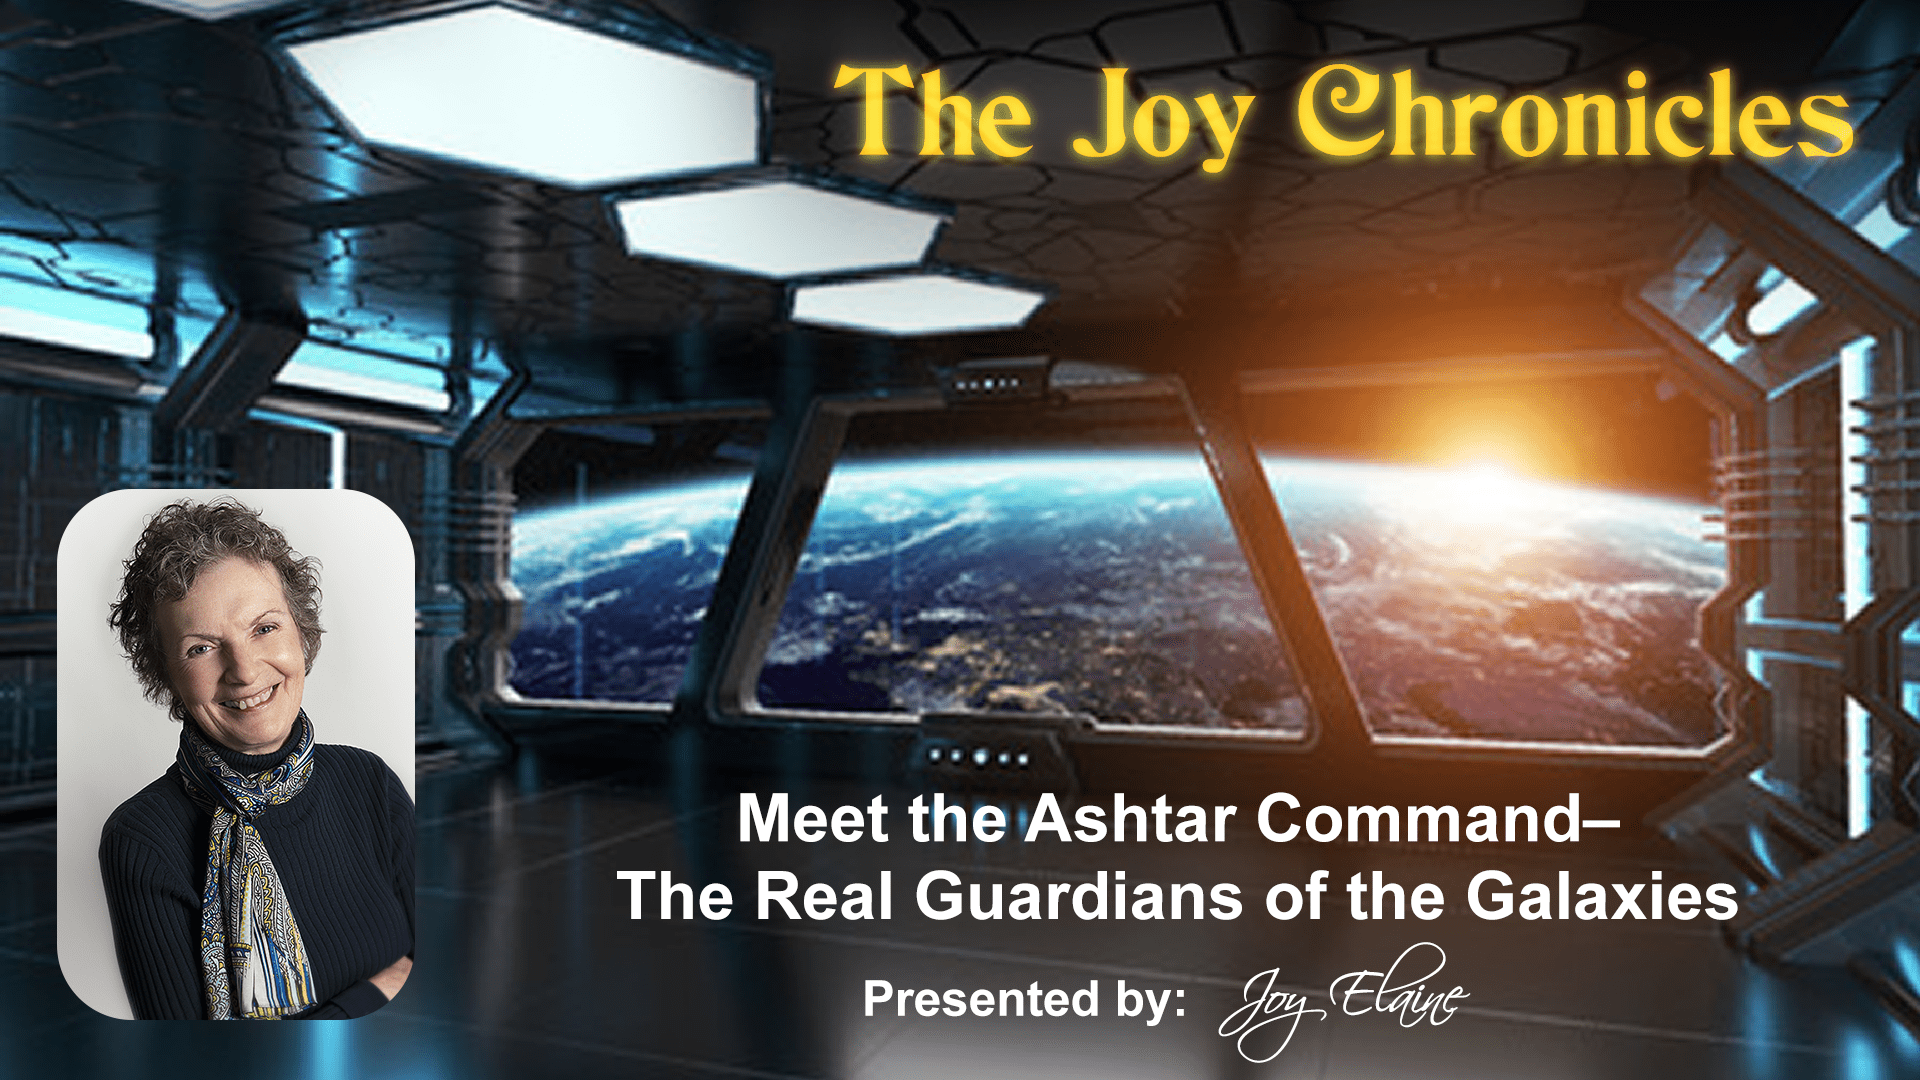 The Joy Chronicles